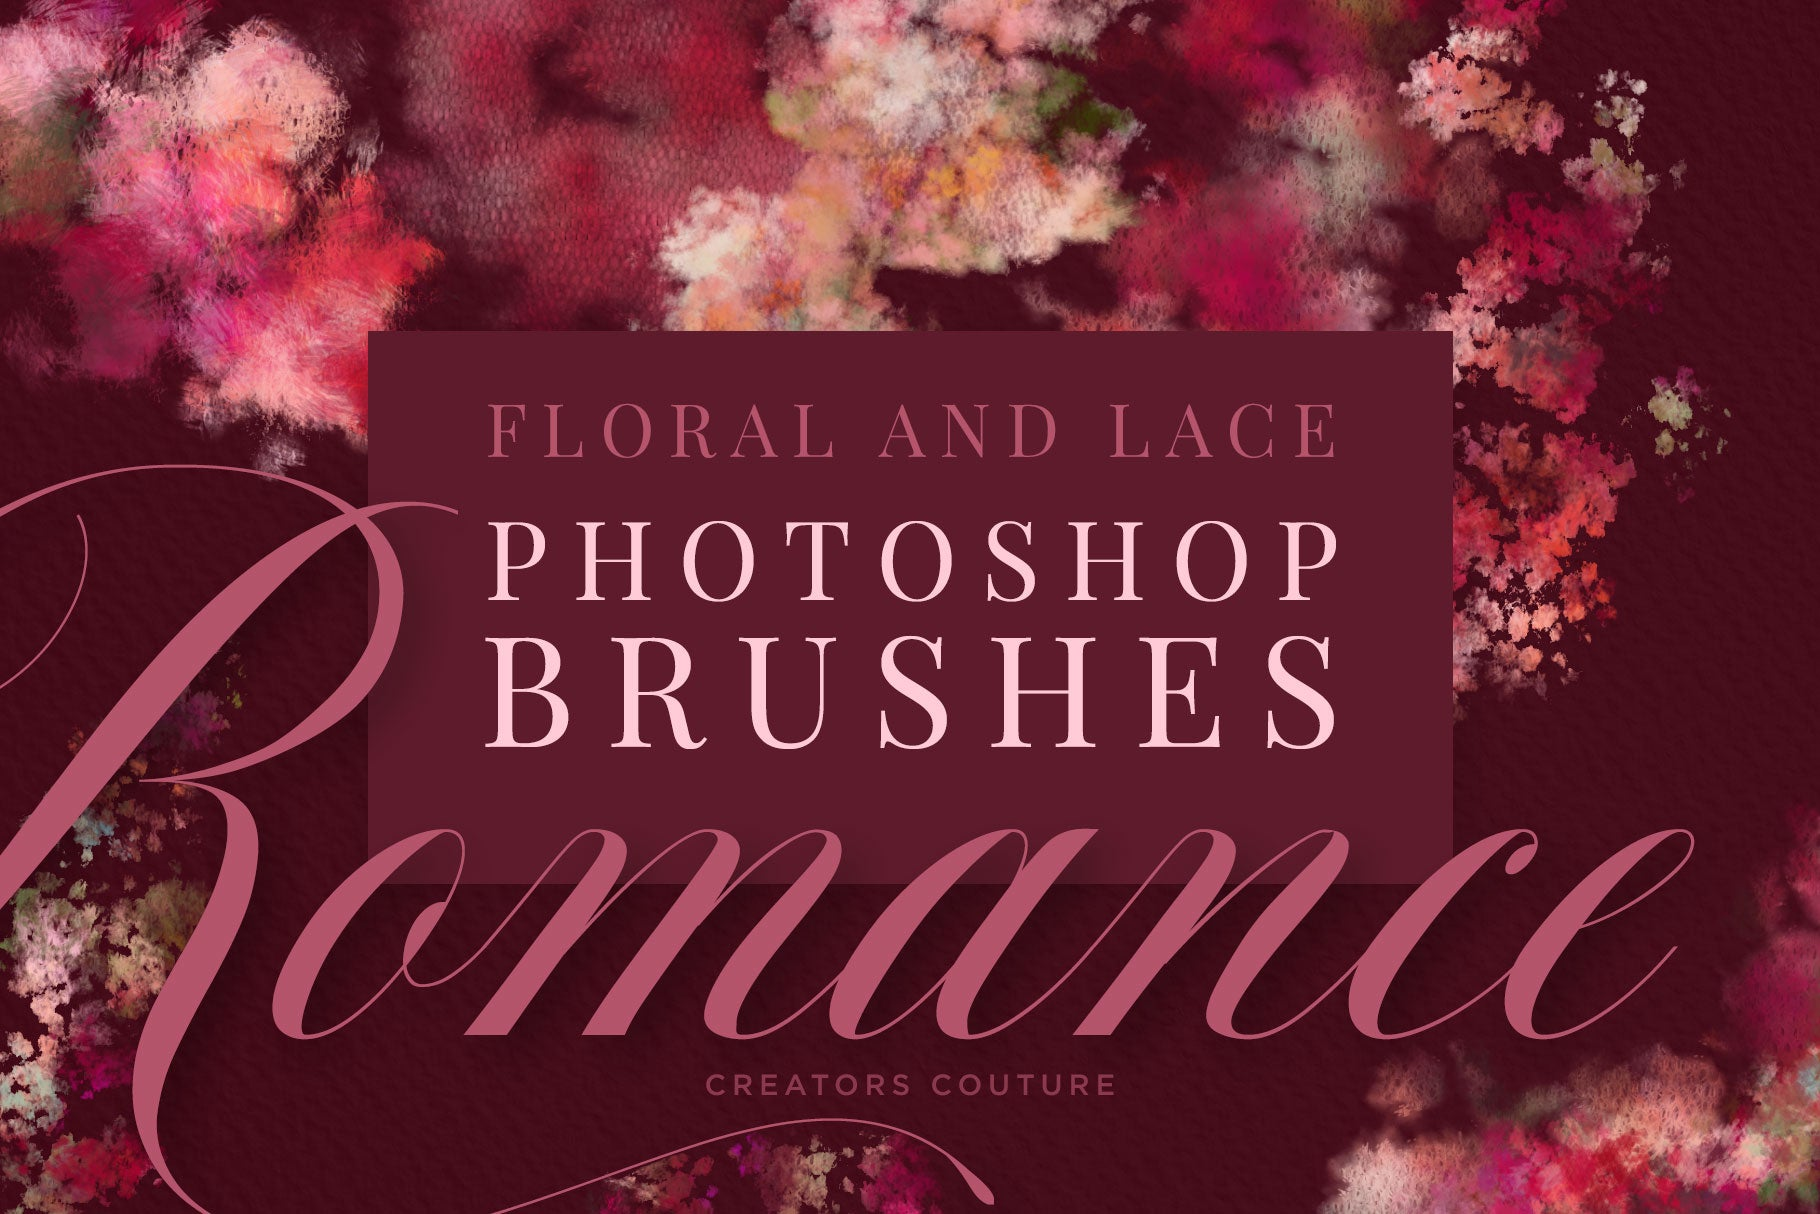 Floral and Lace Romance Color Blending Photoshop Brushes - Creators Couture